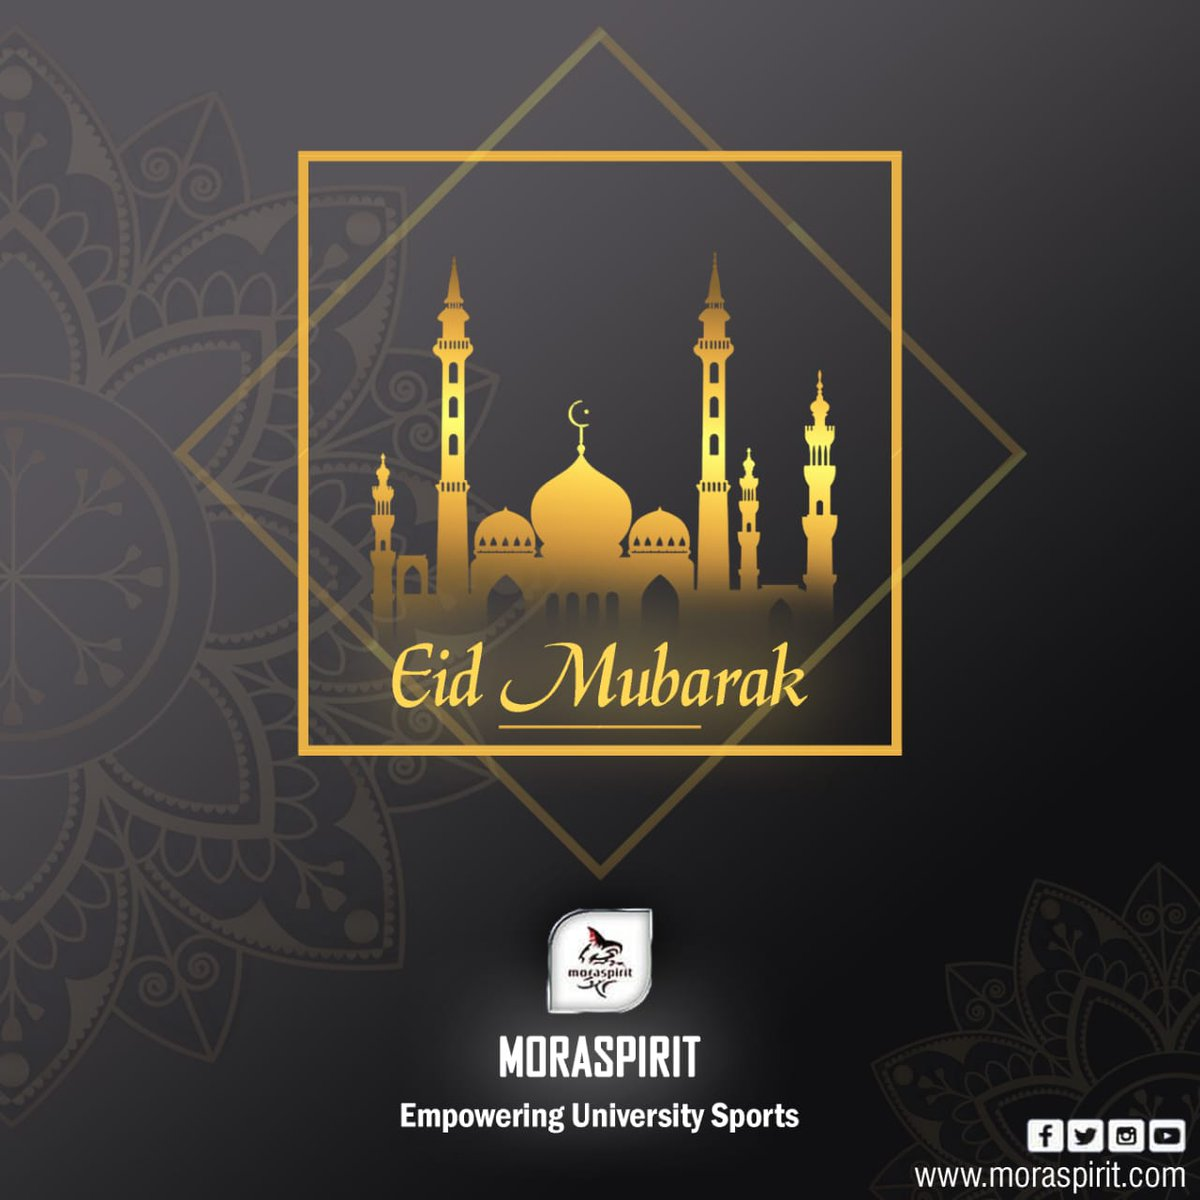 Eid Mubarak to all our Islam friends! May God bring you happiness, peace and all the good things you wish for this year. #Moraspirit #Empowering_university_sports  #Eid_Mubarak https://t.co/sYApEBSy6o